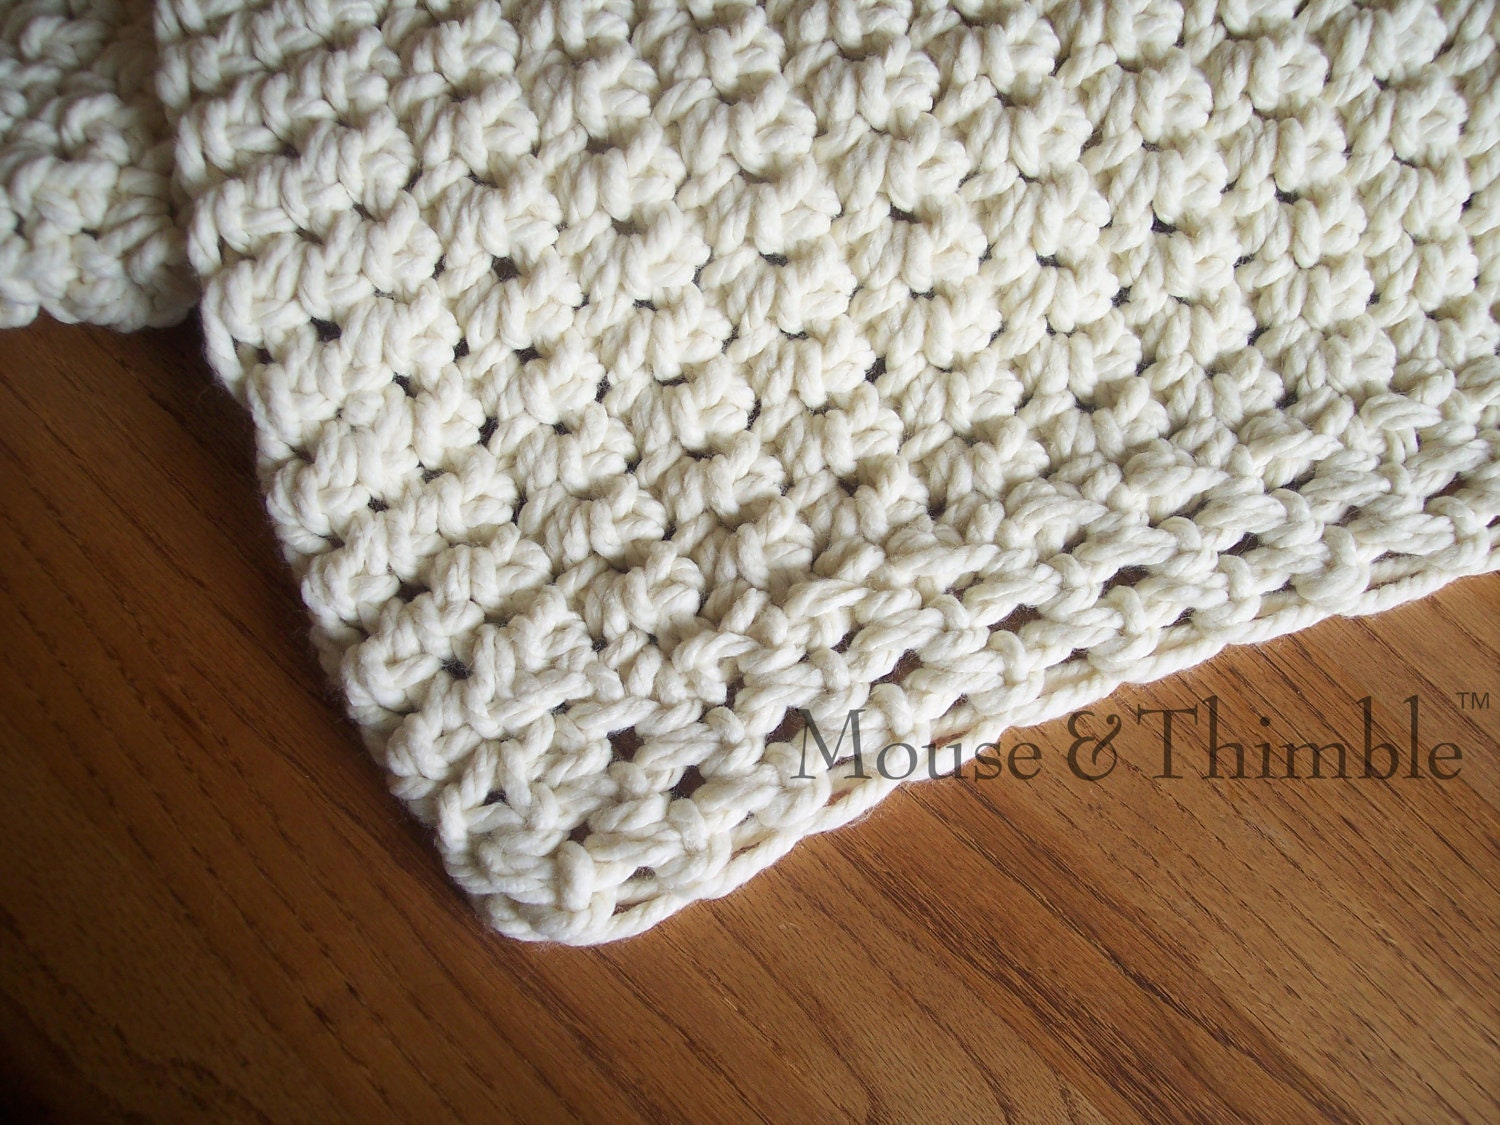 Crochet Stitches Beginners Blankets : Small Lap Size Chunky Afghan Blanket Crochet by MouseAndThimble